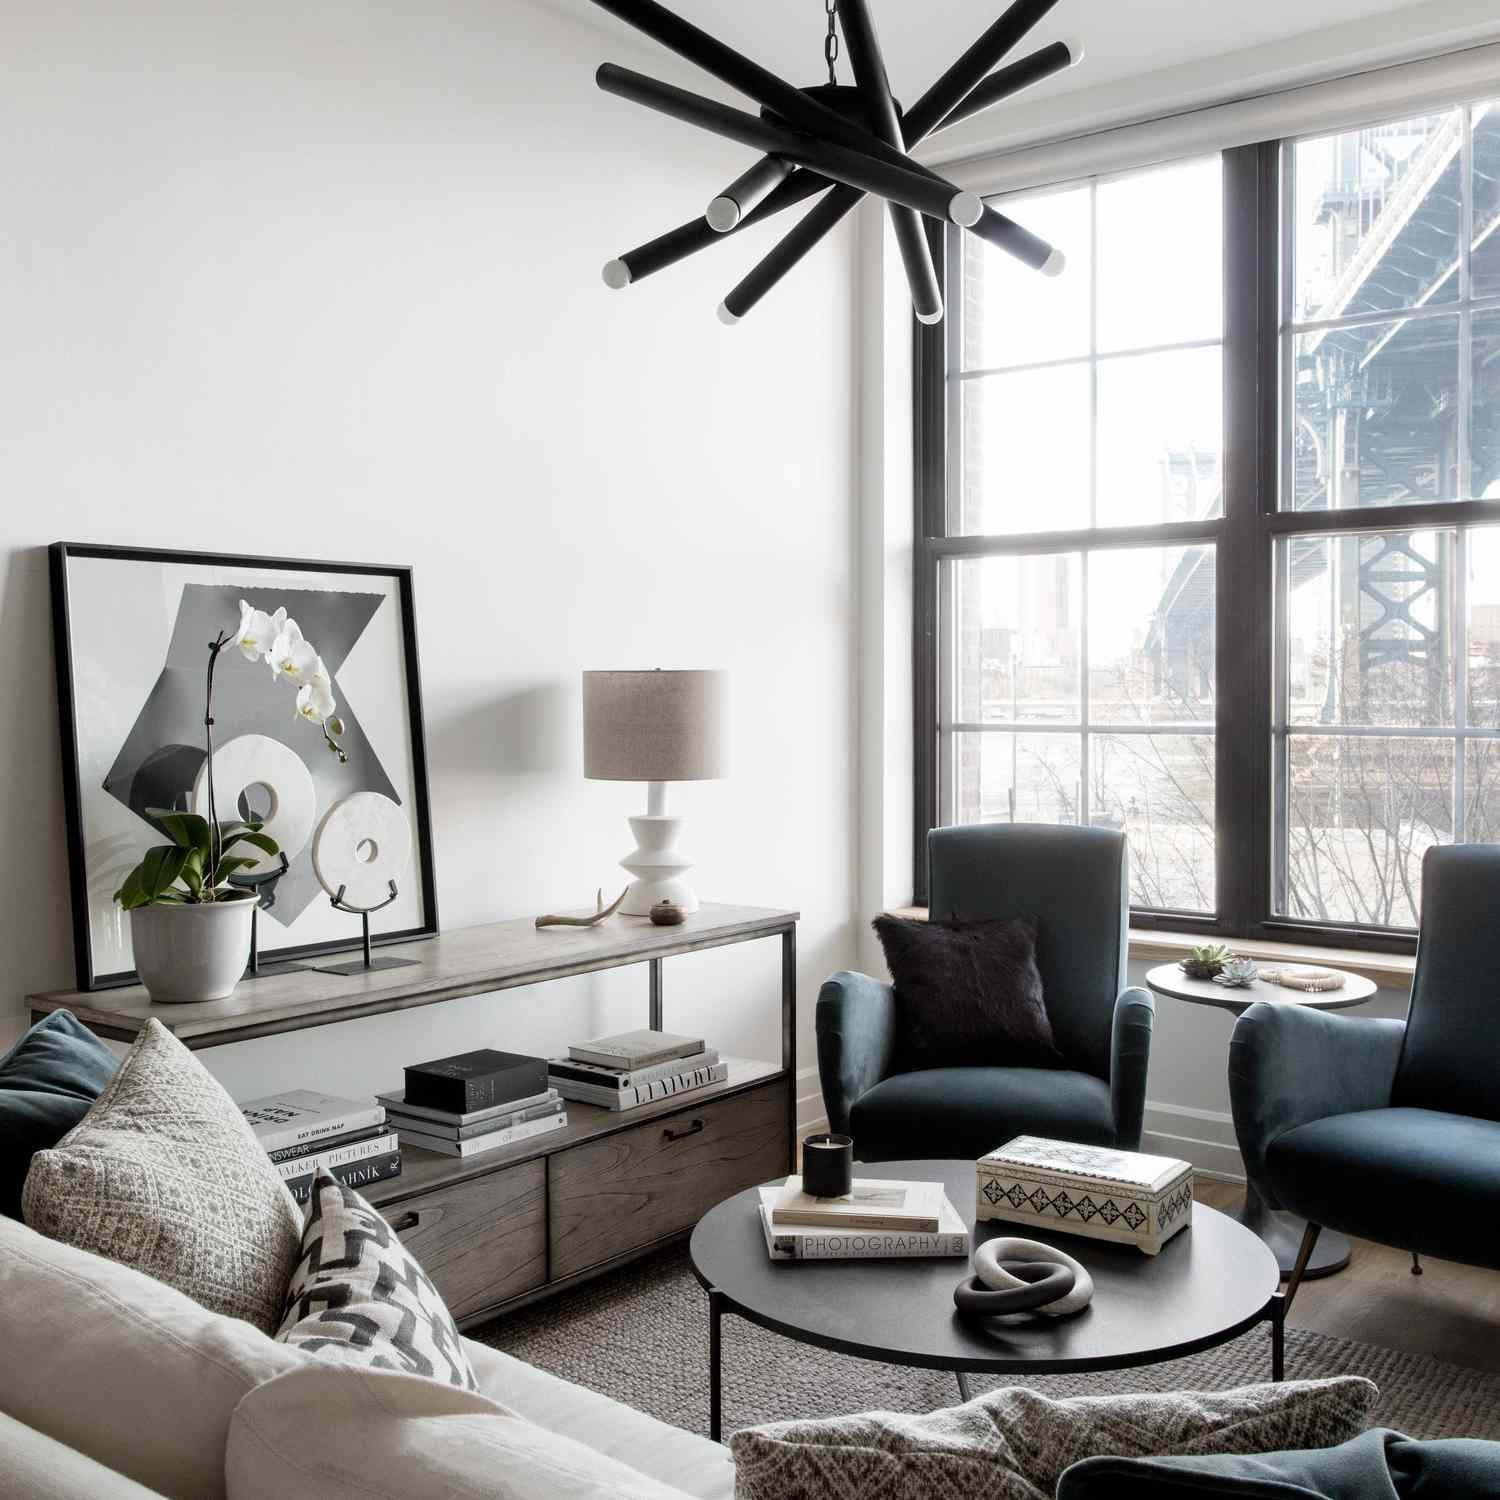 Apartment living room with black and white geometric chandelier.